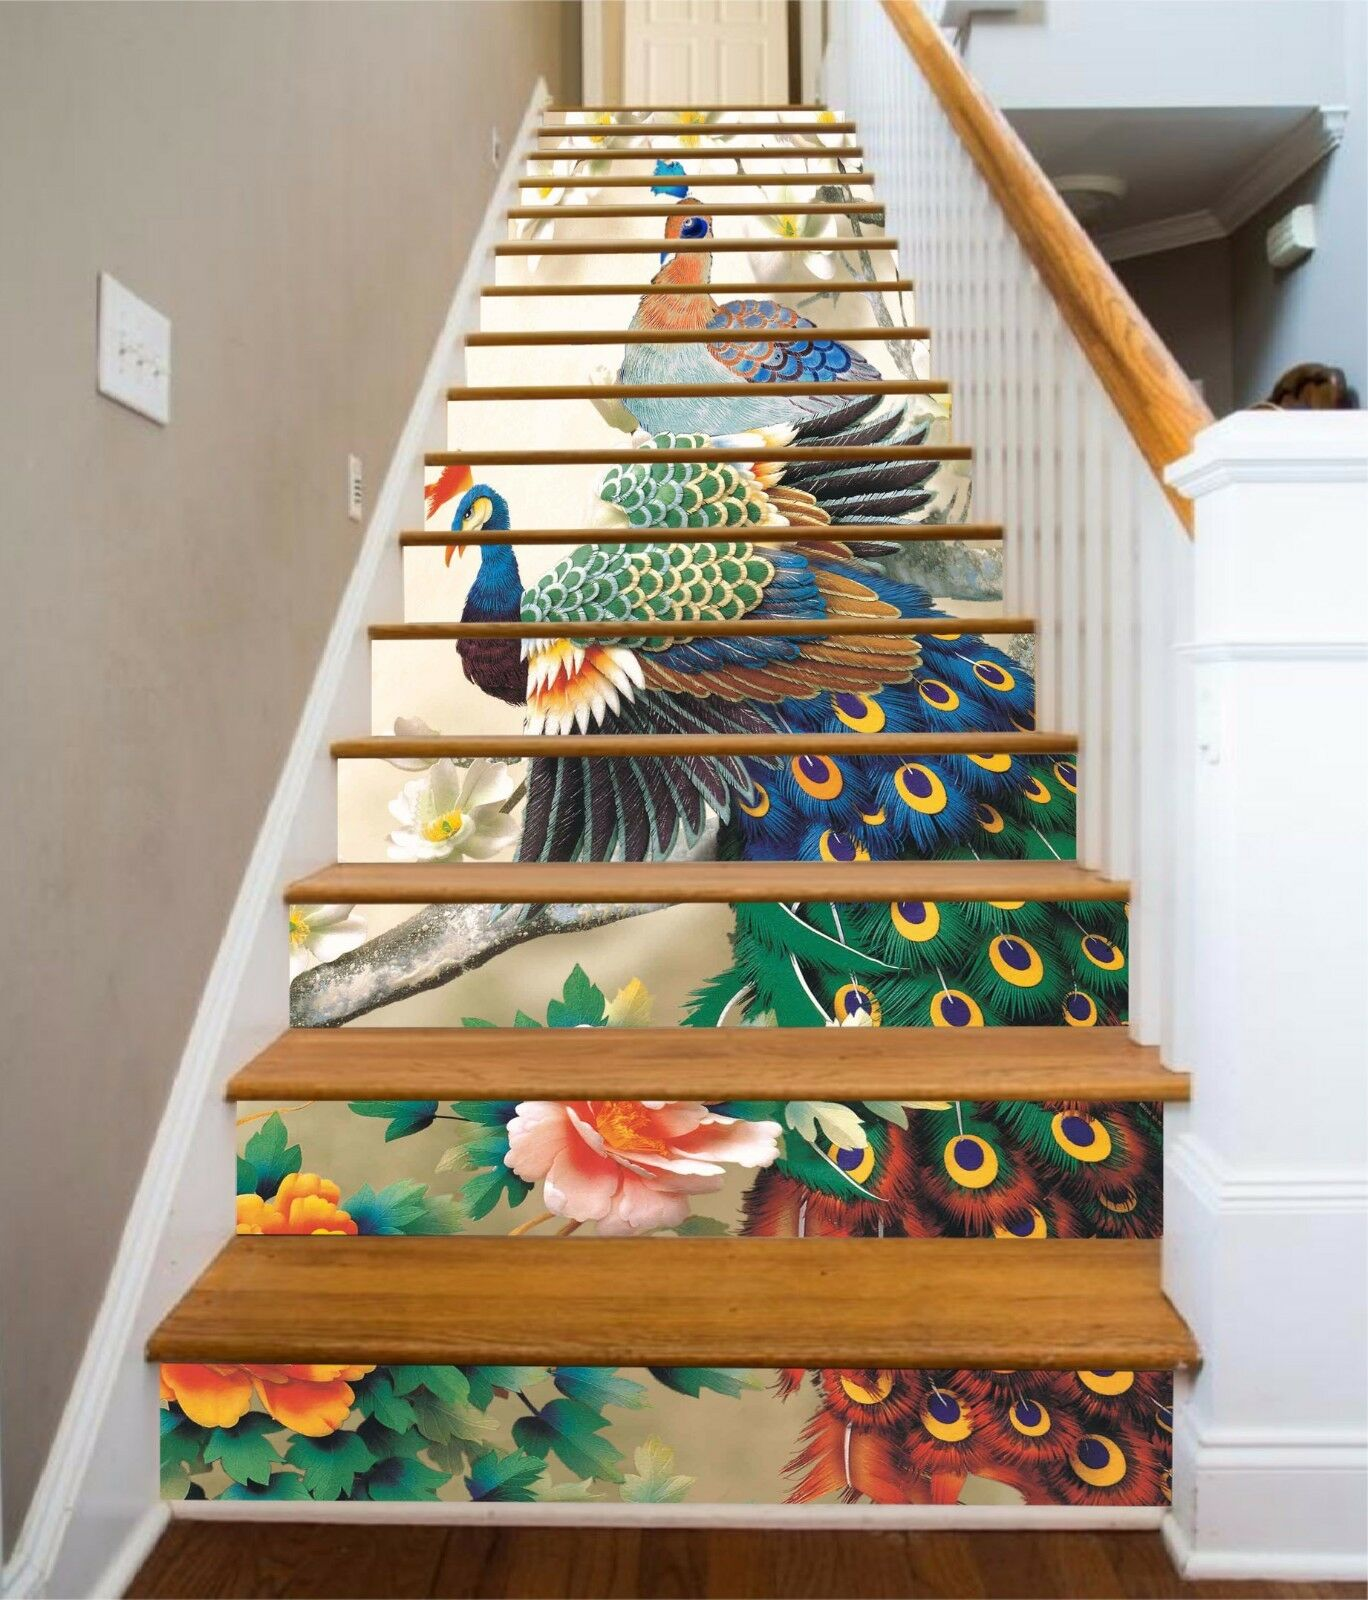 3D Peacocks 234 Stairs Risers Decoration Photo Mural Vinyl Decal Wallpaper US